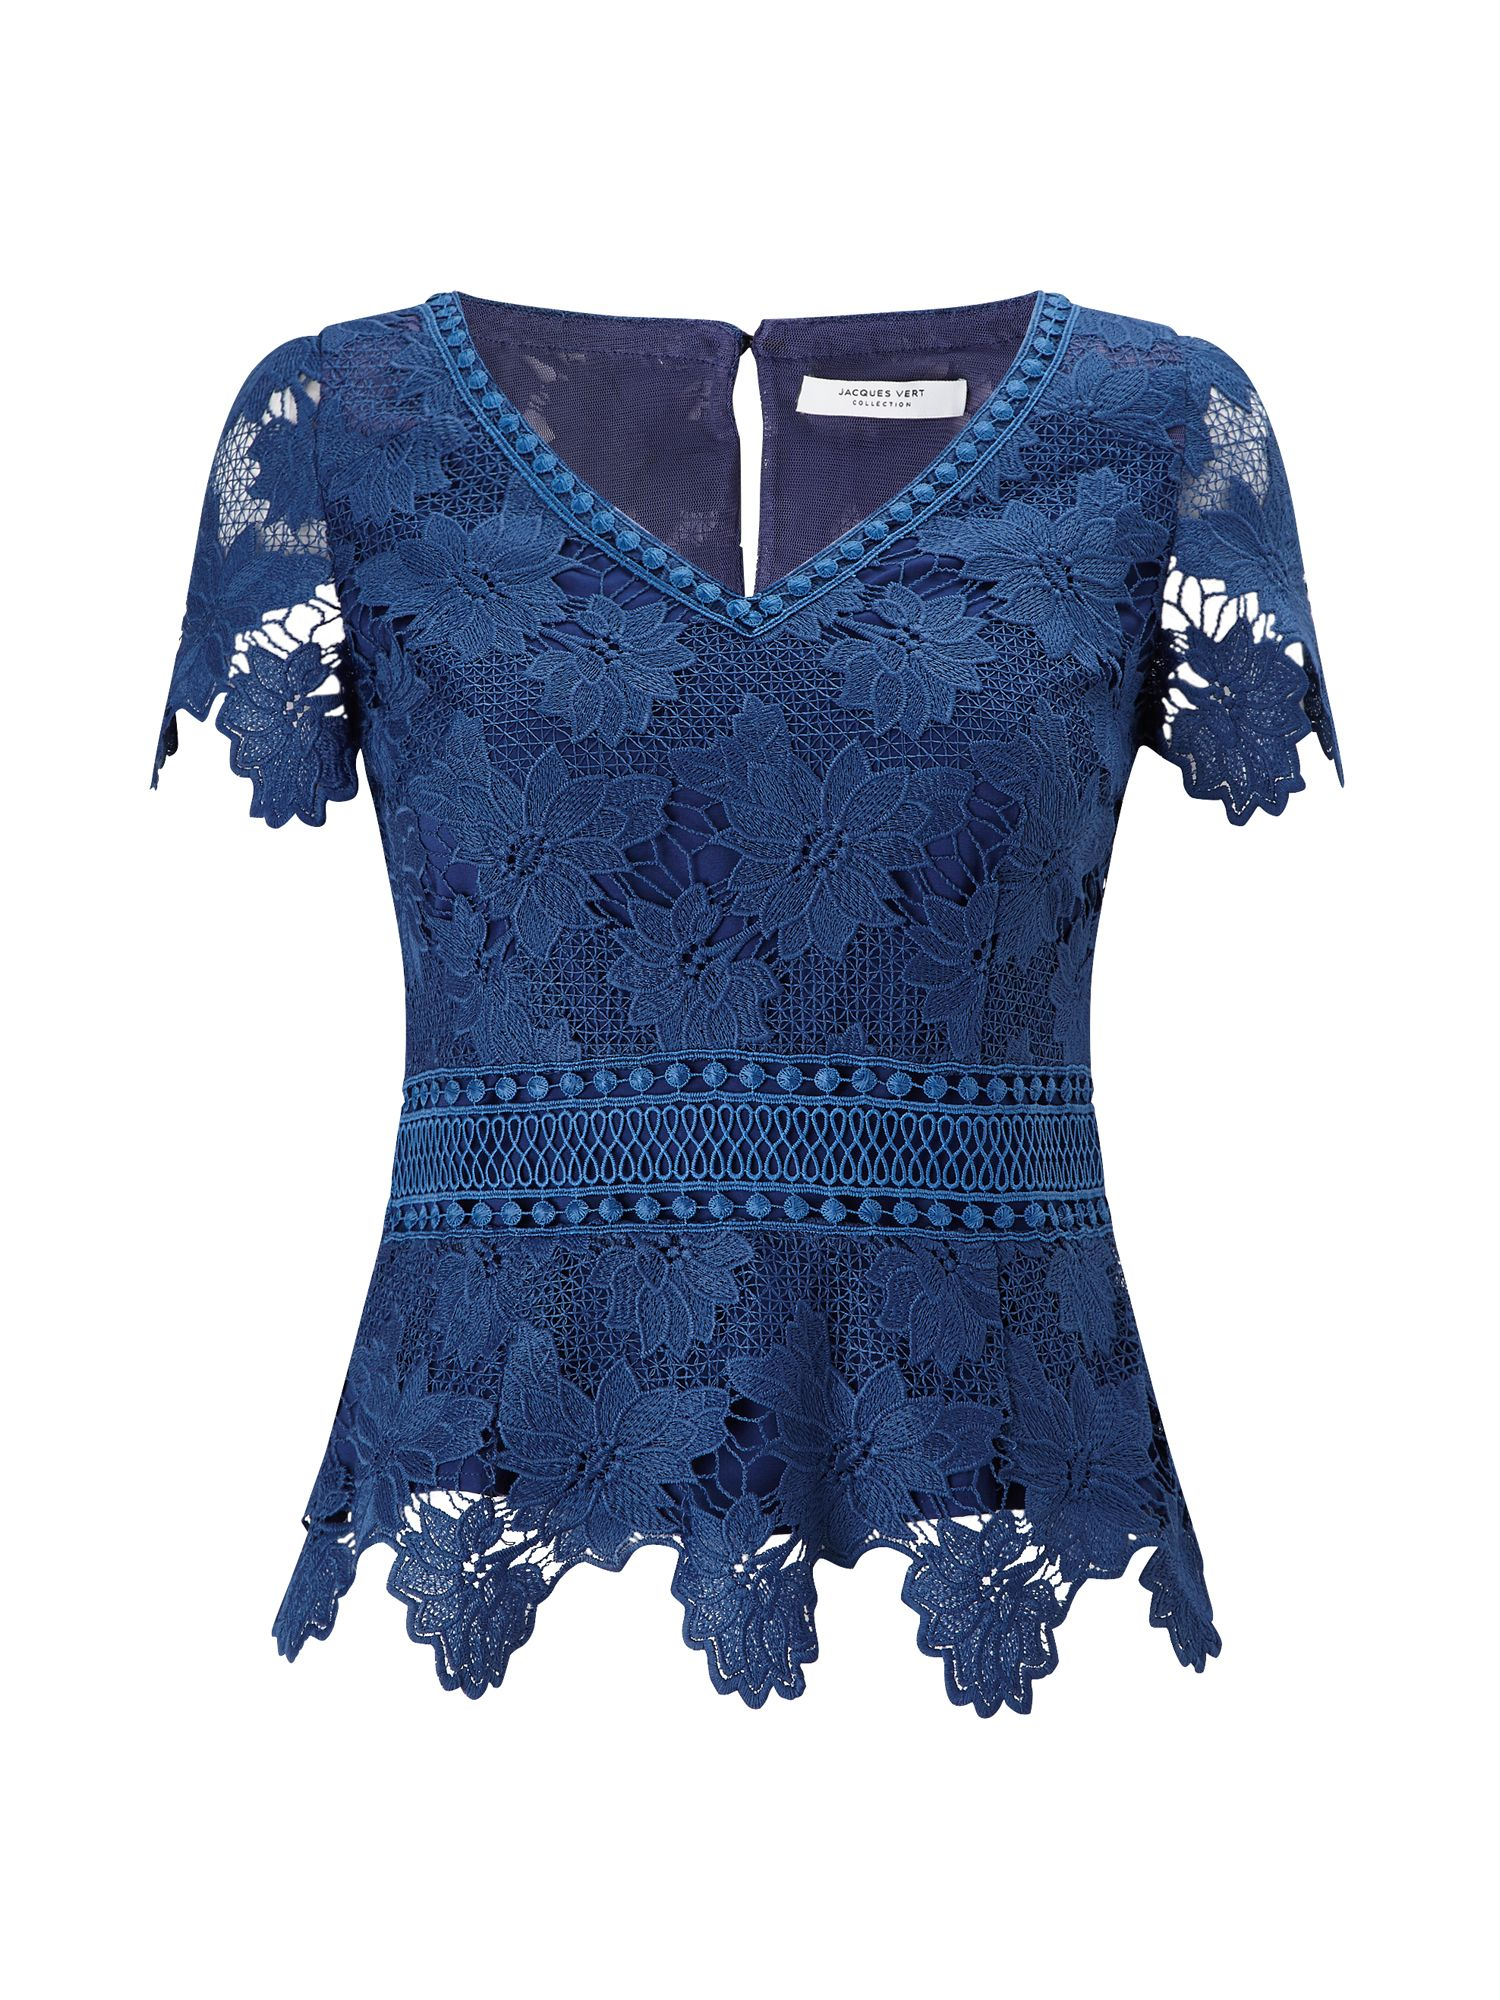 Jacques Vert Lace Border Top, Blue